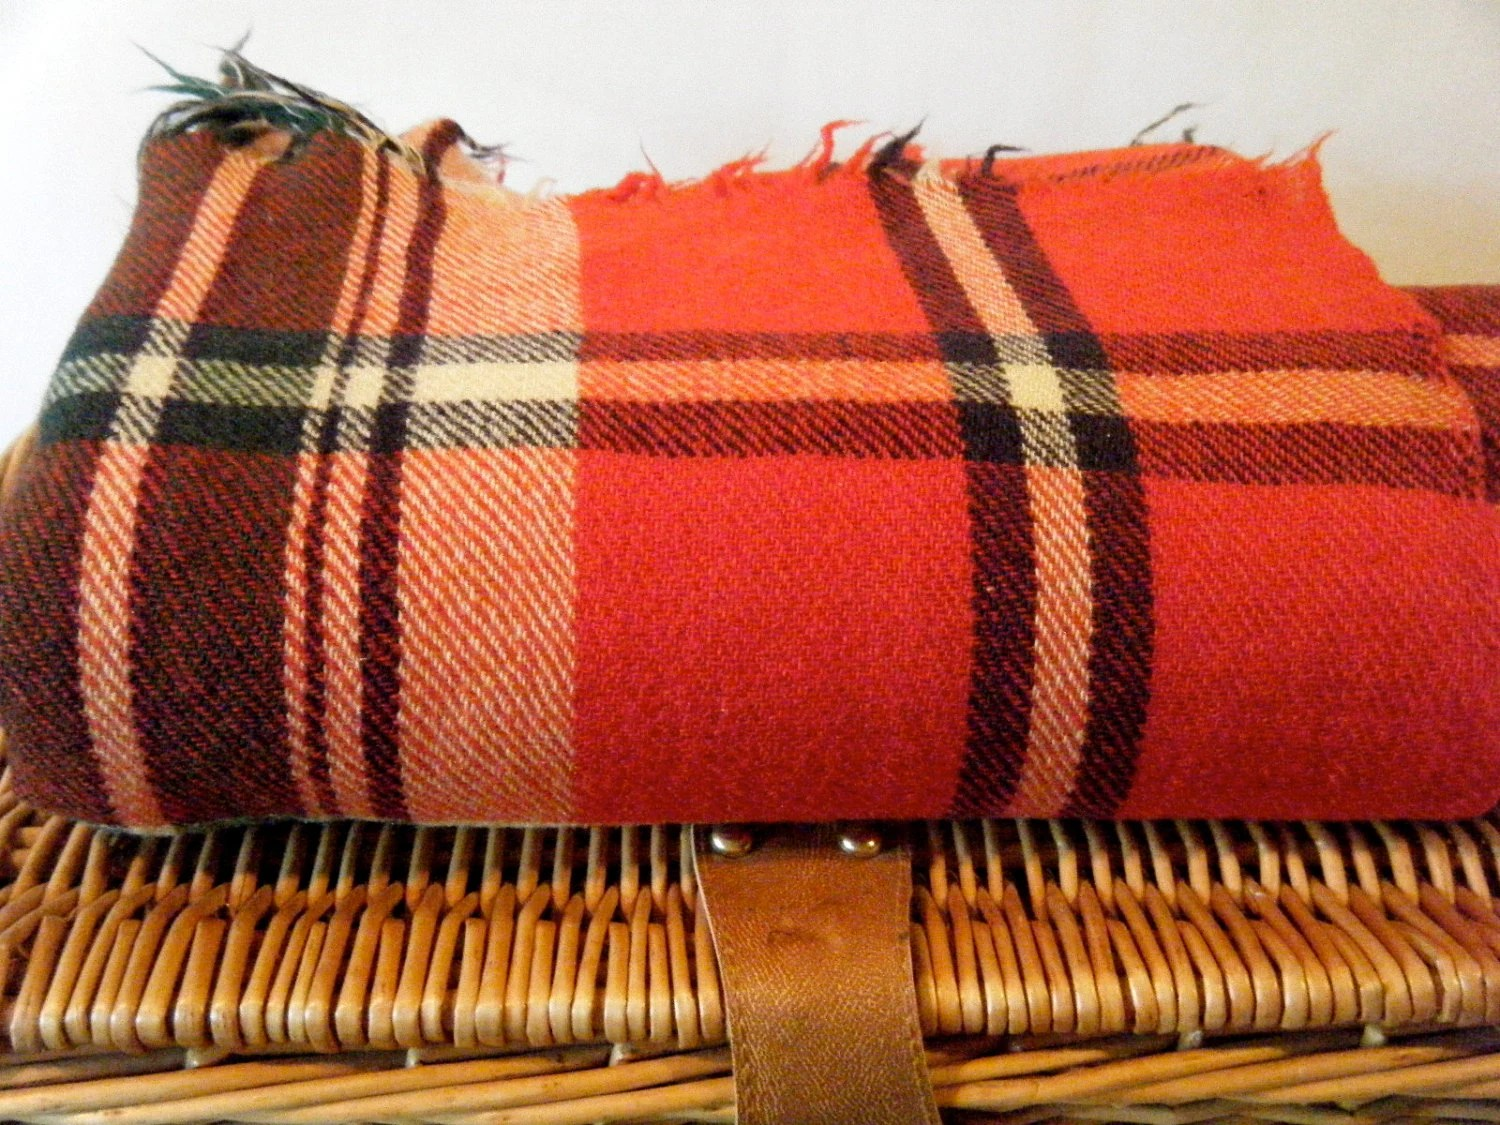 Vintage Classic Red Plaid Wool Throw Blanket, Everyday Use, Picnic Basket Blanket, Thinner Style Wool, Use As Shaw - KaiserVonVintage